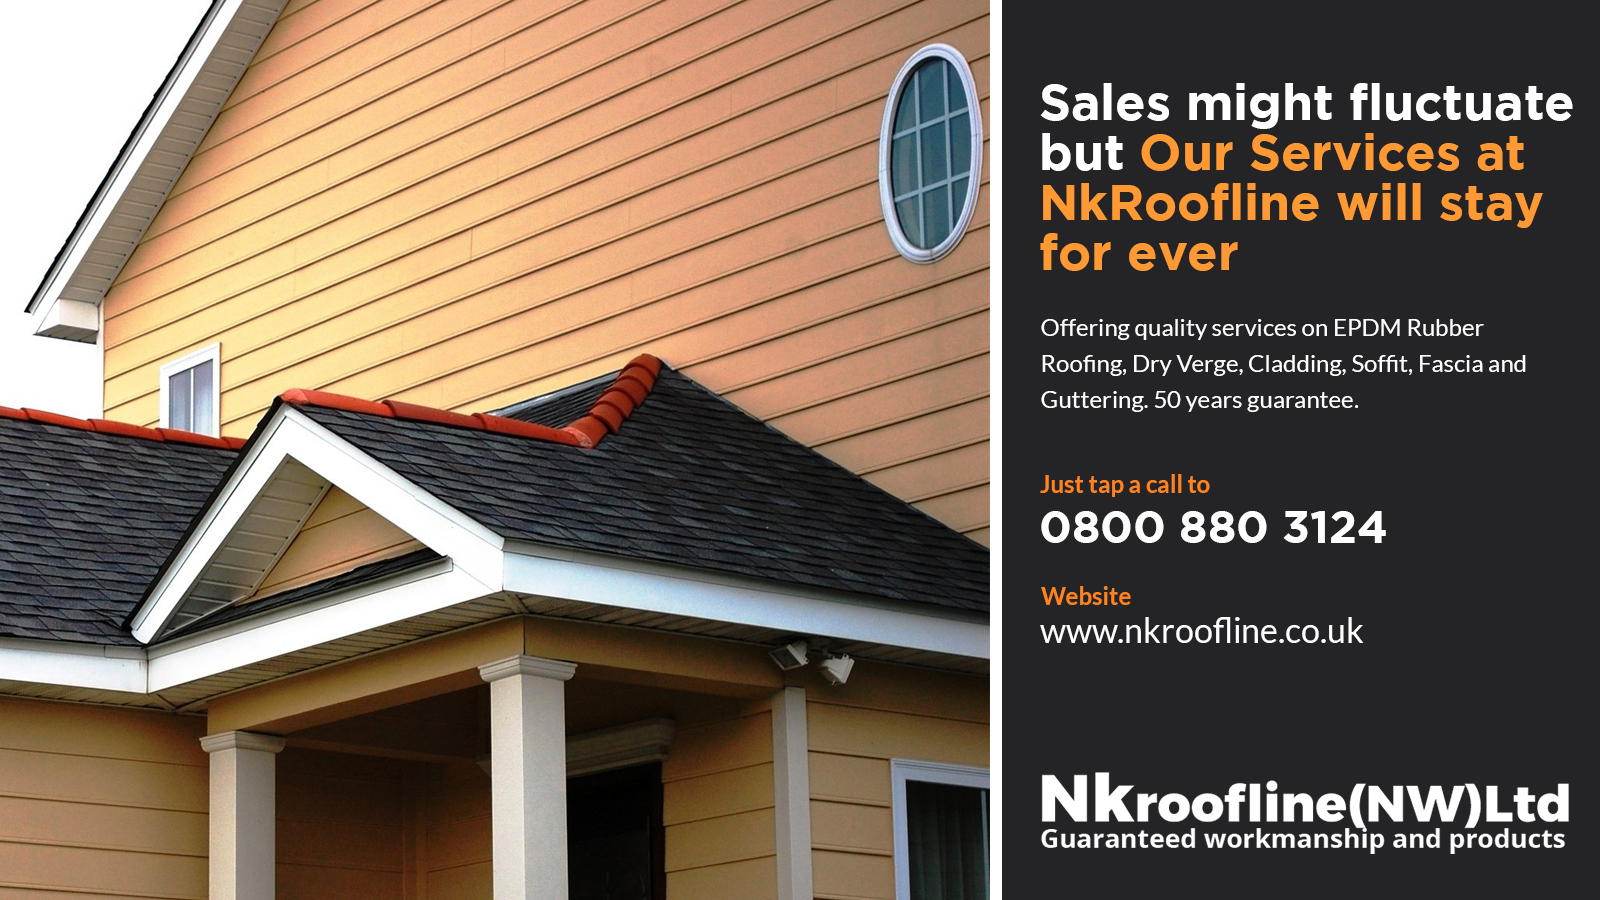 soffits, guttering, cladding, rubber roofing services